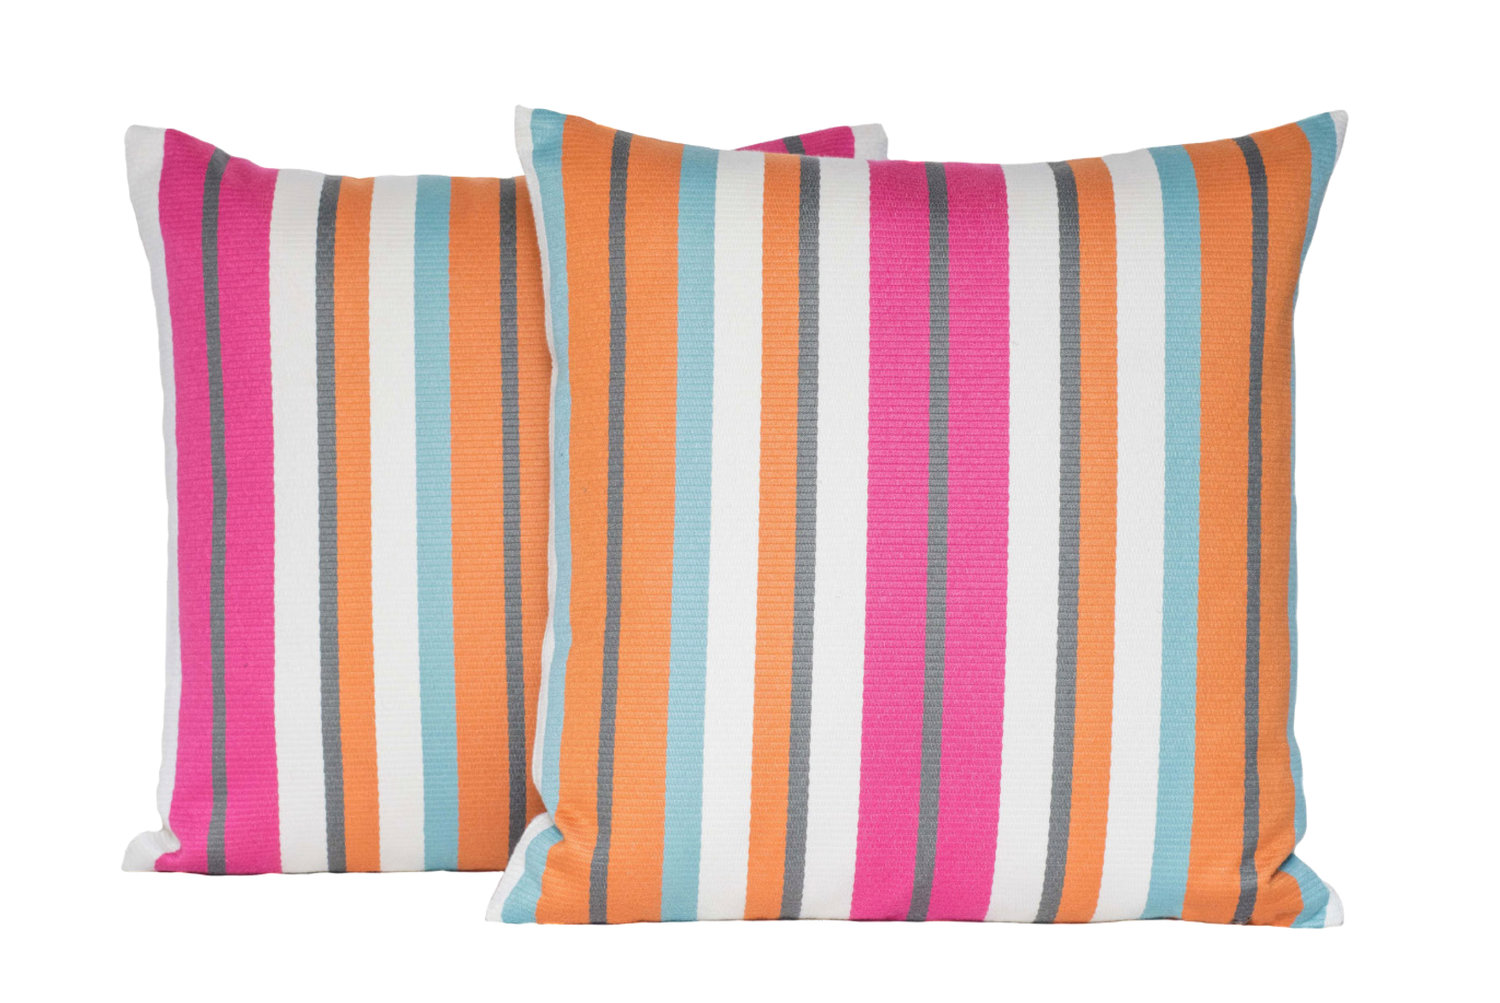 Kreatelier Fabric Remnant Pillow, $30